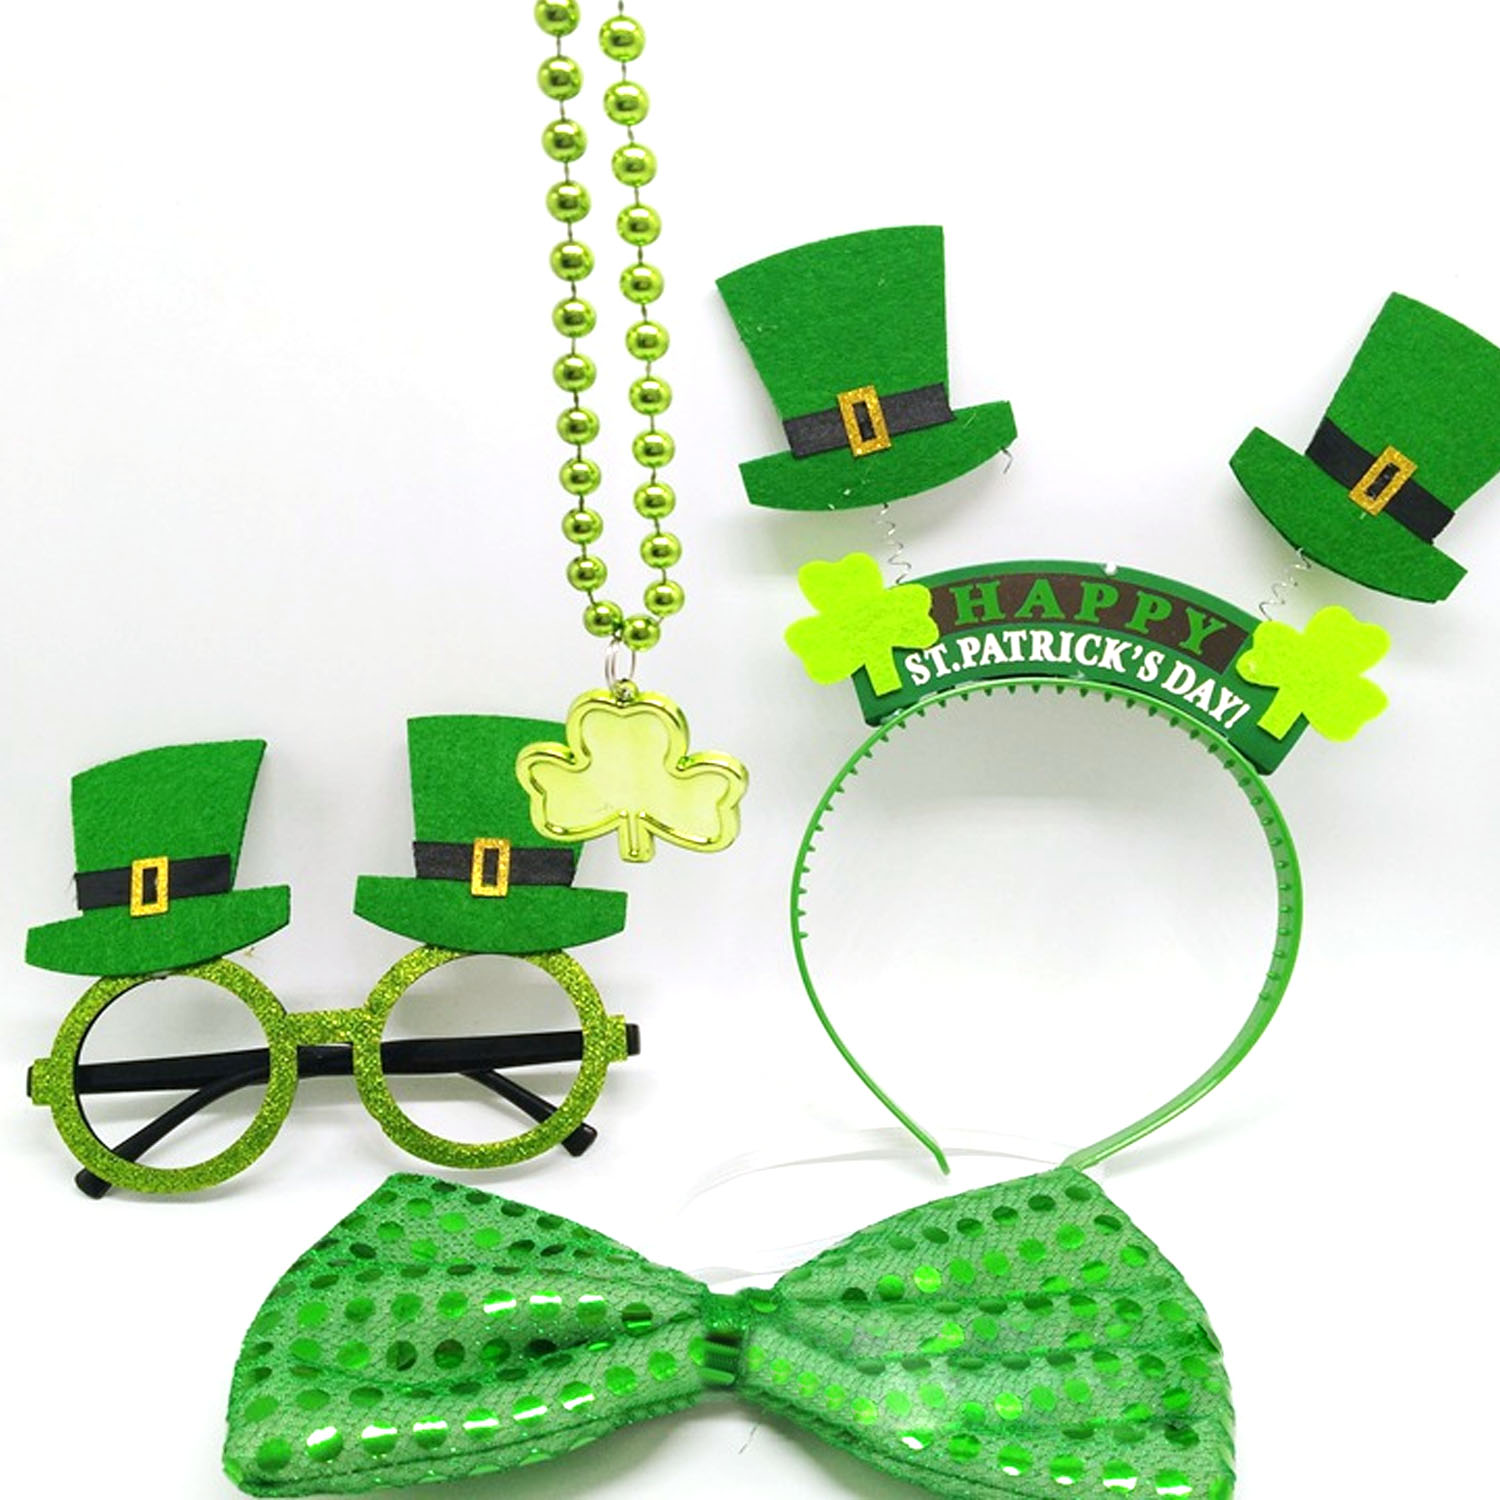 4pcs St Patricks Day Lucky Charm Costume Accessories Set Hair Hoop Necklace Glasses Sequin Bow For Irish Fun Party Celebration